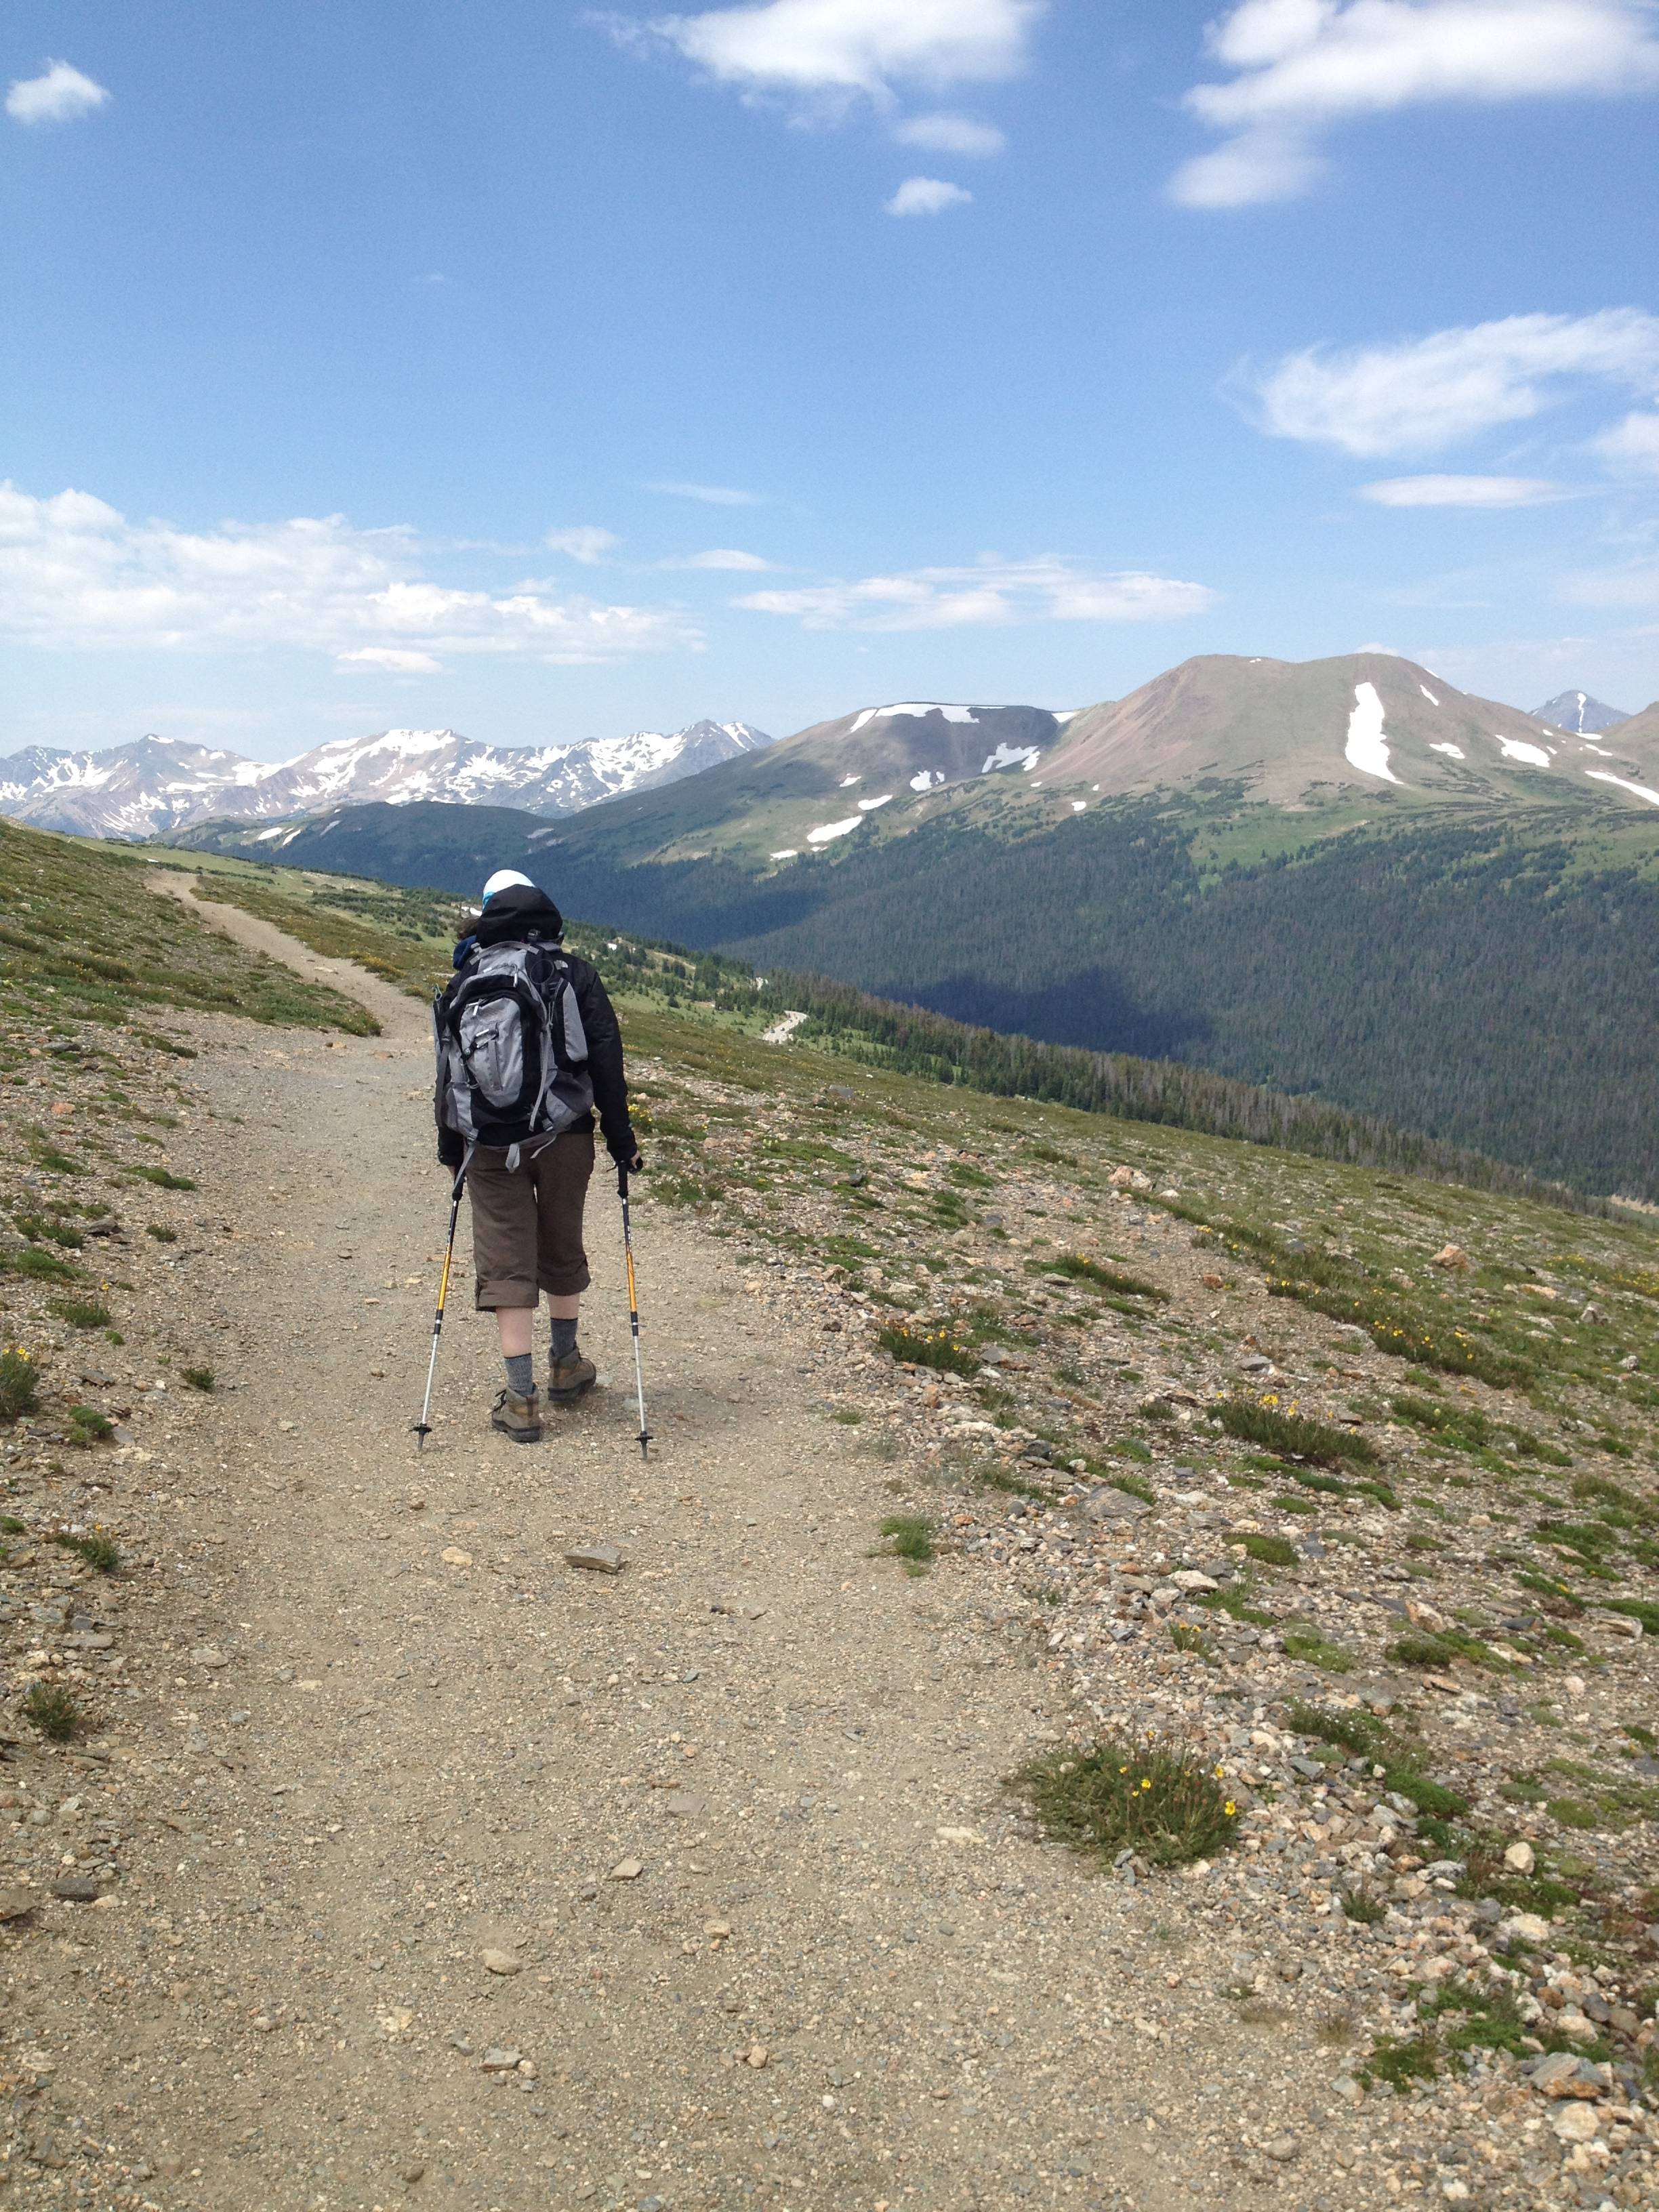 The Upper Ute Trail in Rocky Mountain National Park offers several good day hikes in the eastern side of the park.